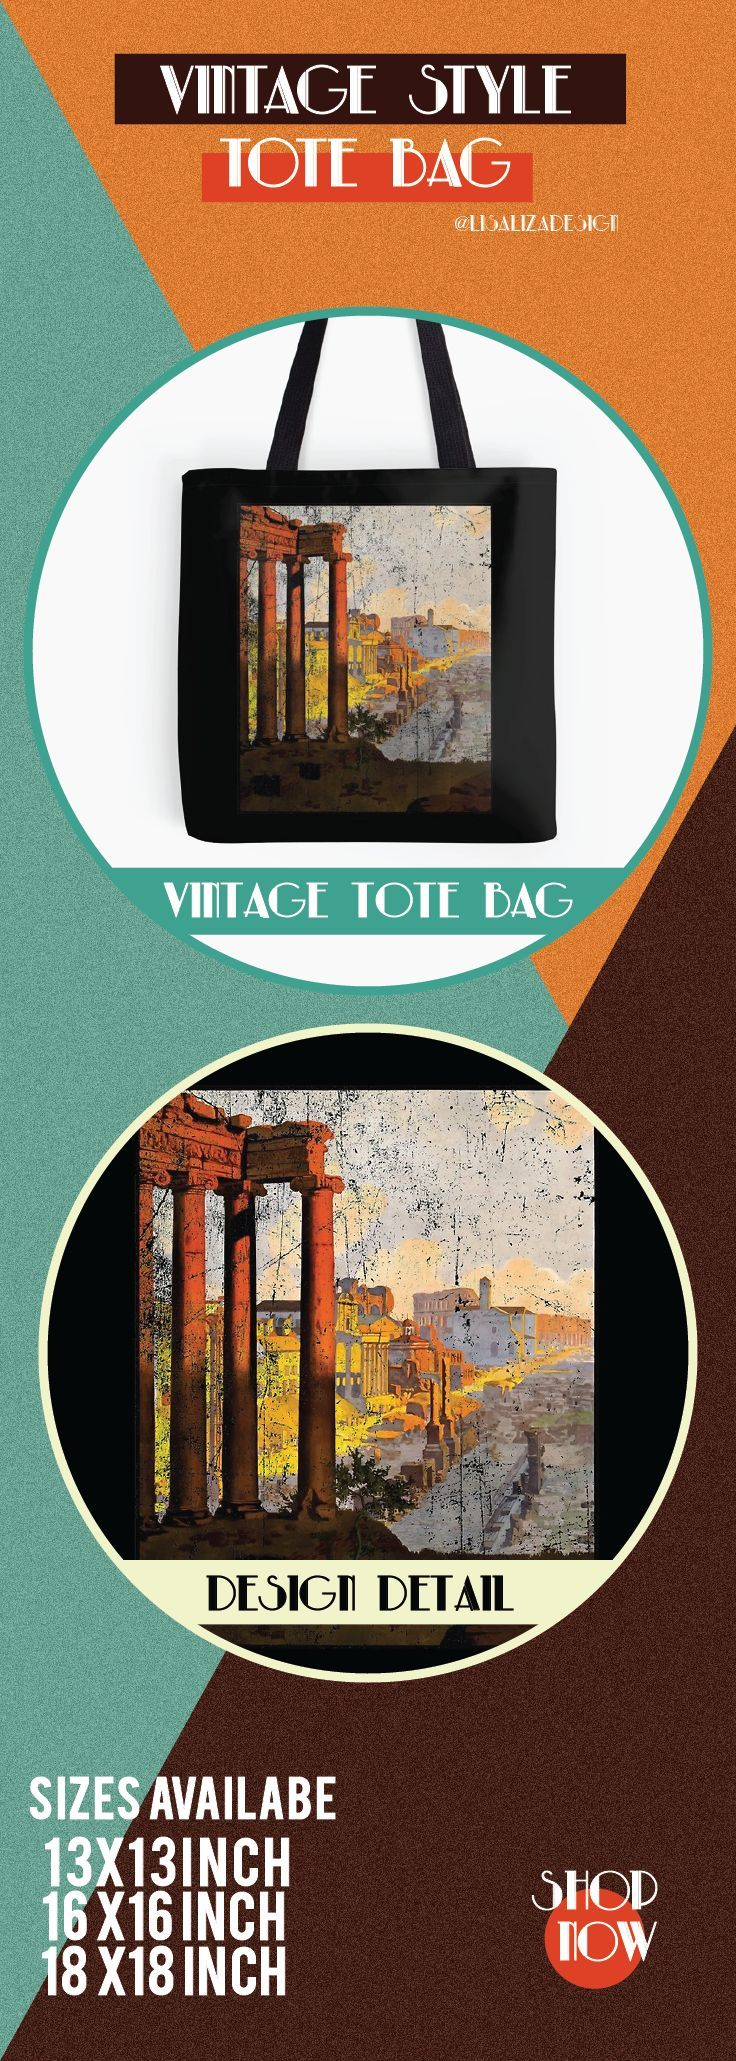 Vintage Travel Poster, Aged and Weathered - Rome.  ToteBags  A collection design inspired by vintage travel and advertisements posters  from the late 19th century printed on durable tote bags. 3 Sizes available.  Excellent gift ideas for vintage lovers and everyone. #vintage #hugs #holidaygift #oldies #homedecor #retro #travelposter #totebag #redbubble #teepublic #lisalizadesign #vintageposter #oldies